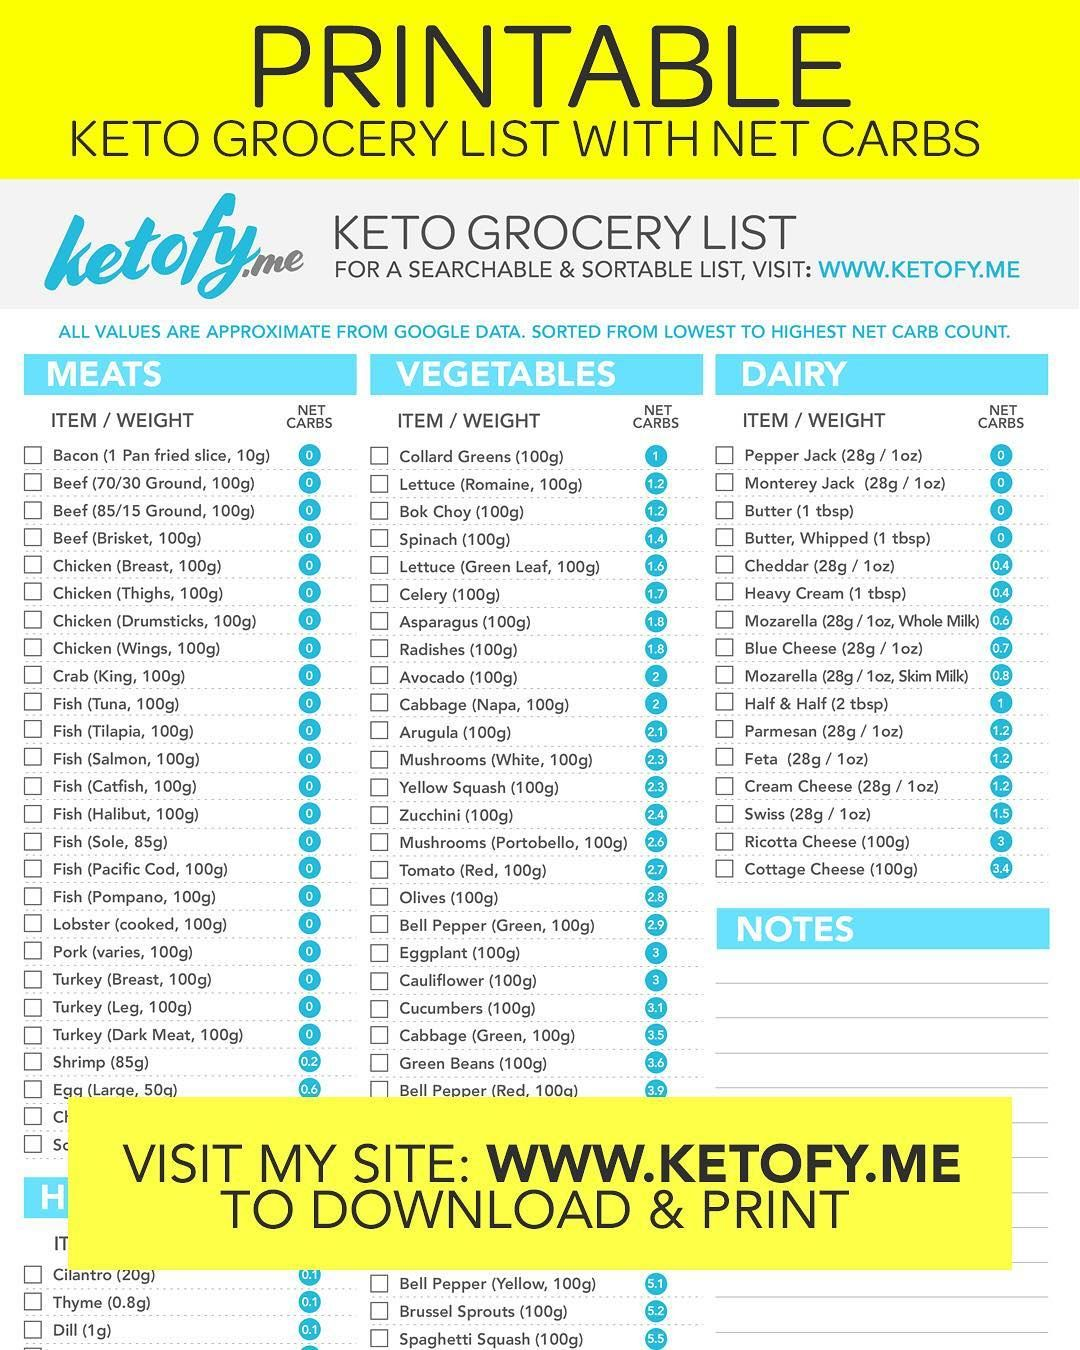 Keto Grocery List With Net Carbs Here Is A Downloadable